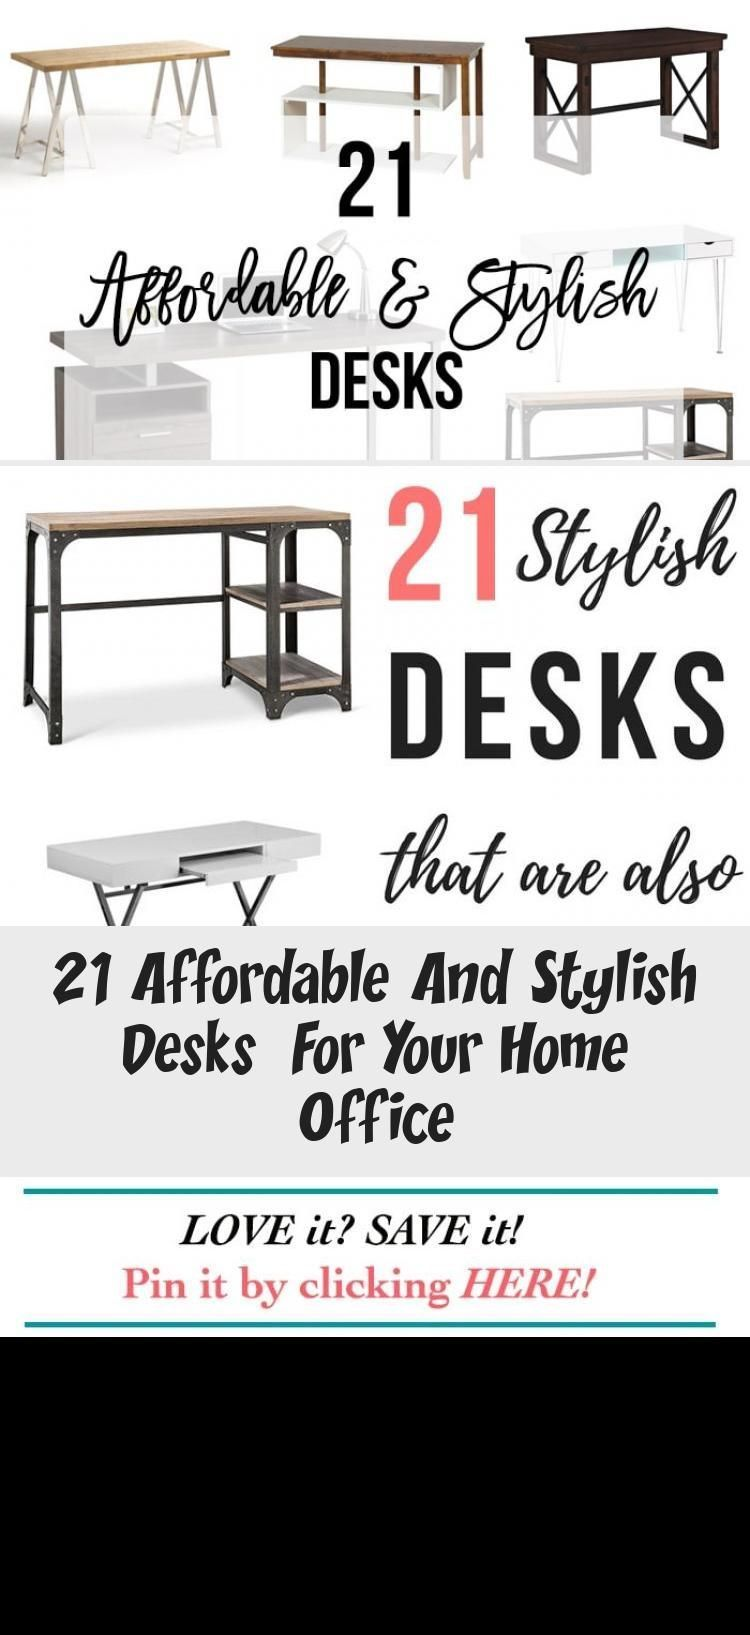 Affordable Butterfly Decor Tattoo Work Office Decor Birthday Work Office Decor Black Work Office Deco Stylish Desk Simple Office Decor Work Office Decor